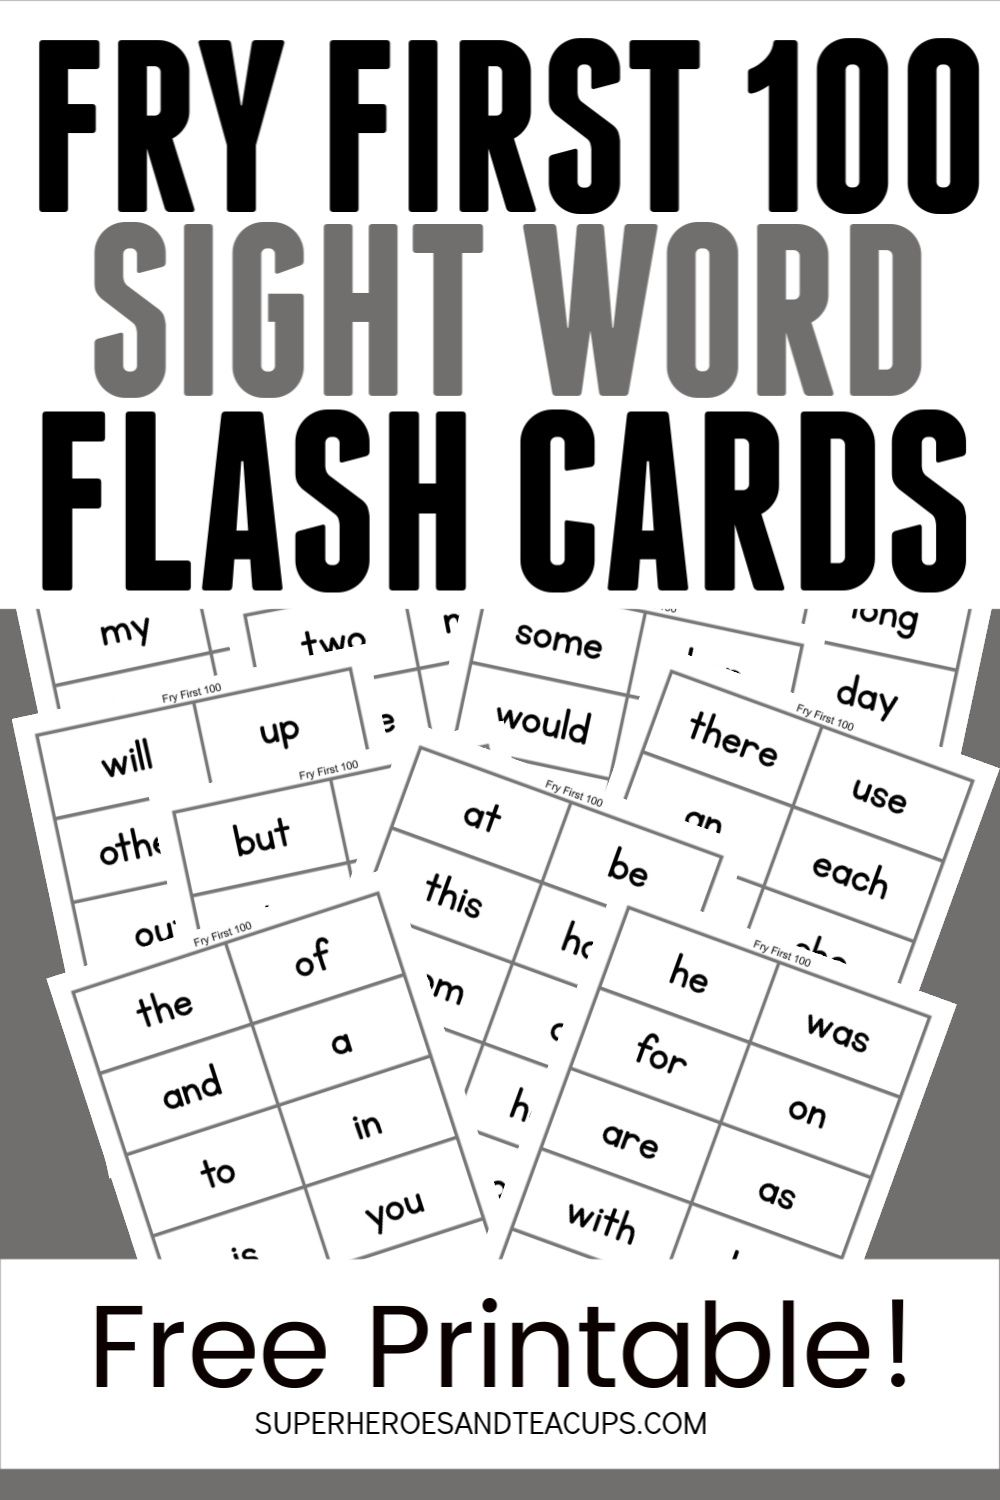 Fry Sight Word Flash Cards Free Printable Learning Ideas